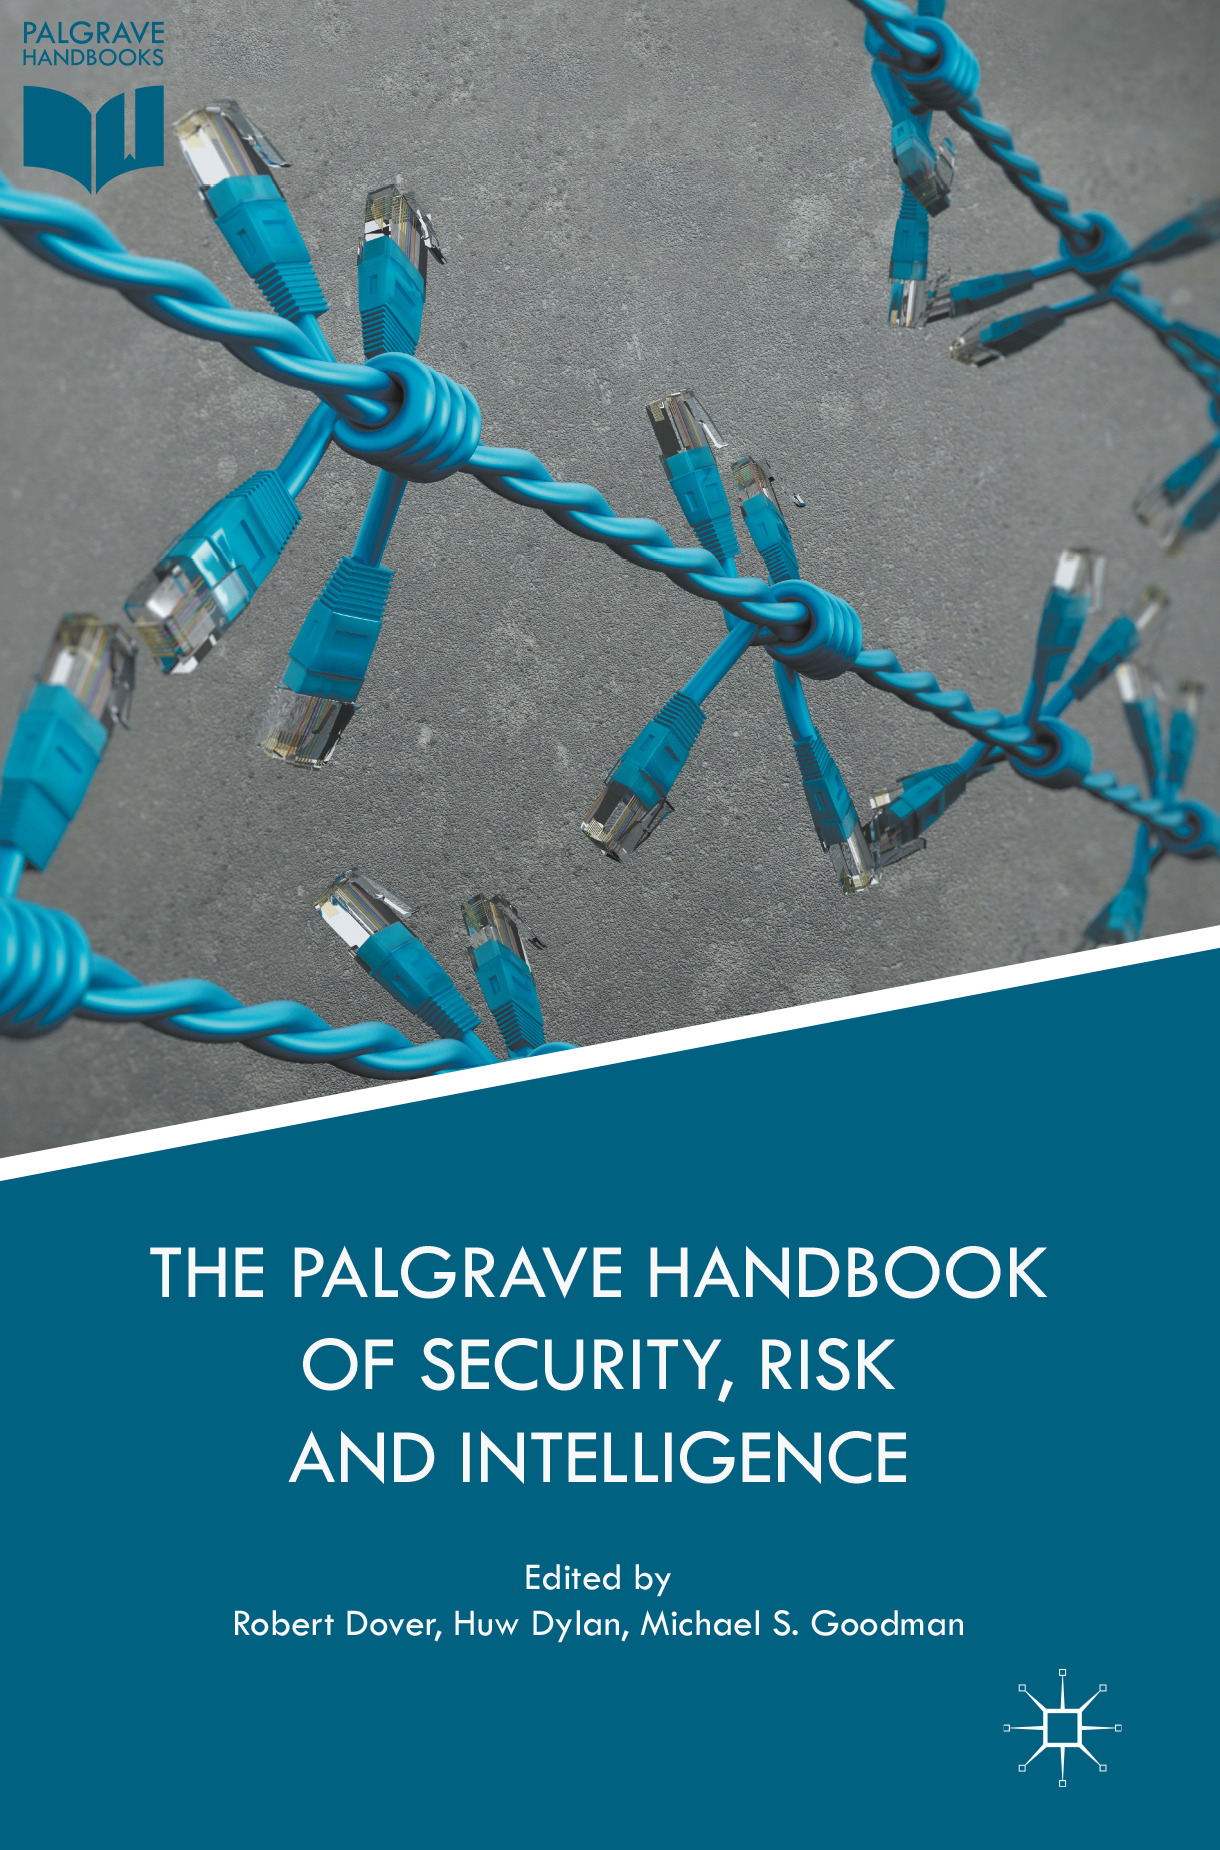 Dover, Robert - The Palgrave Handbook of Security, Risk and Intelligence, ebook